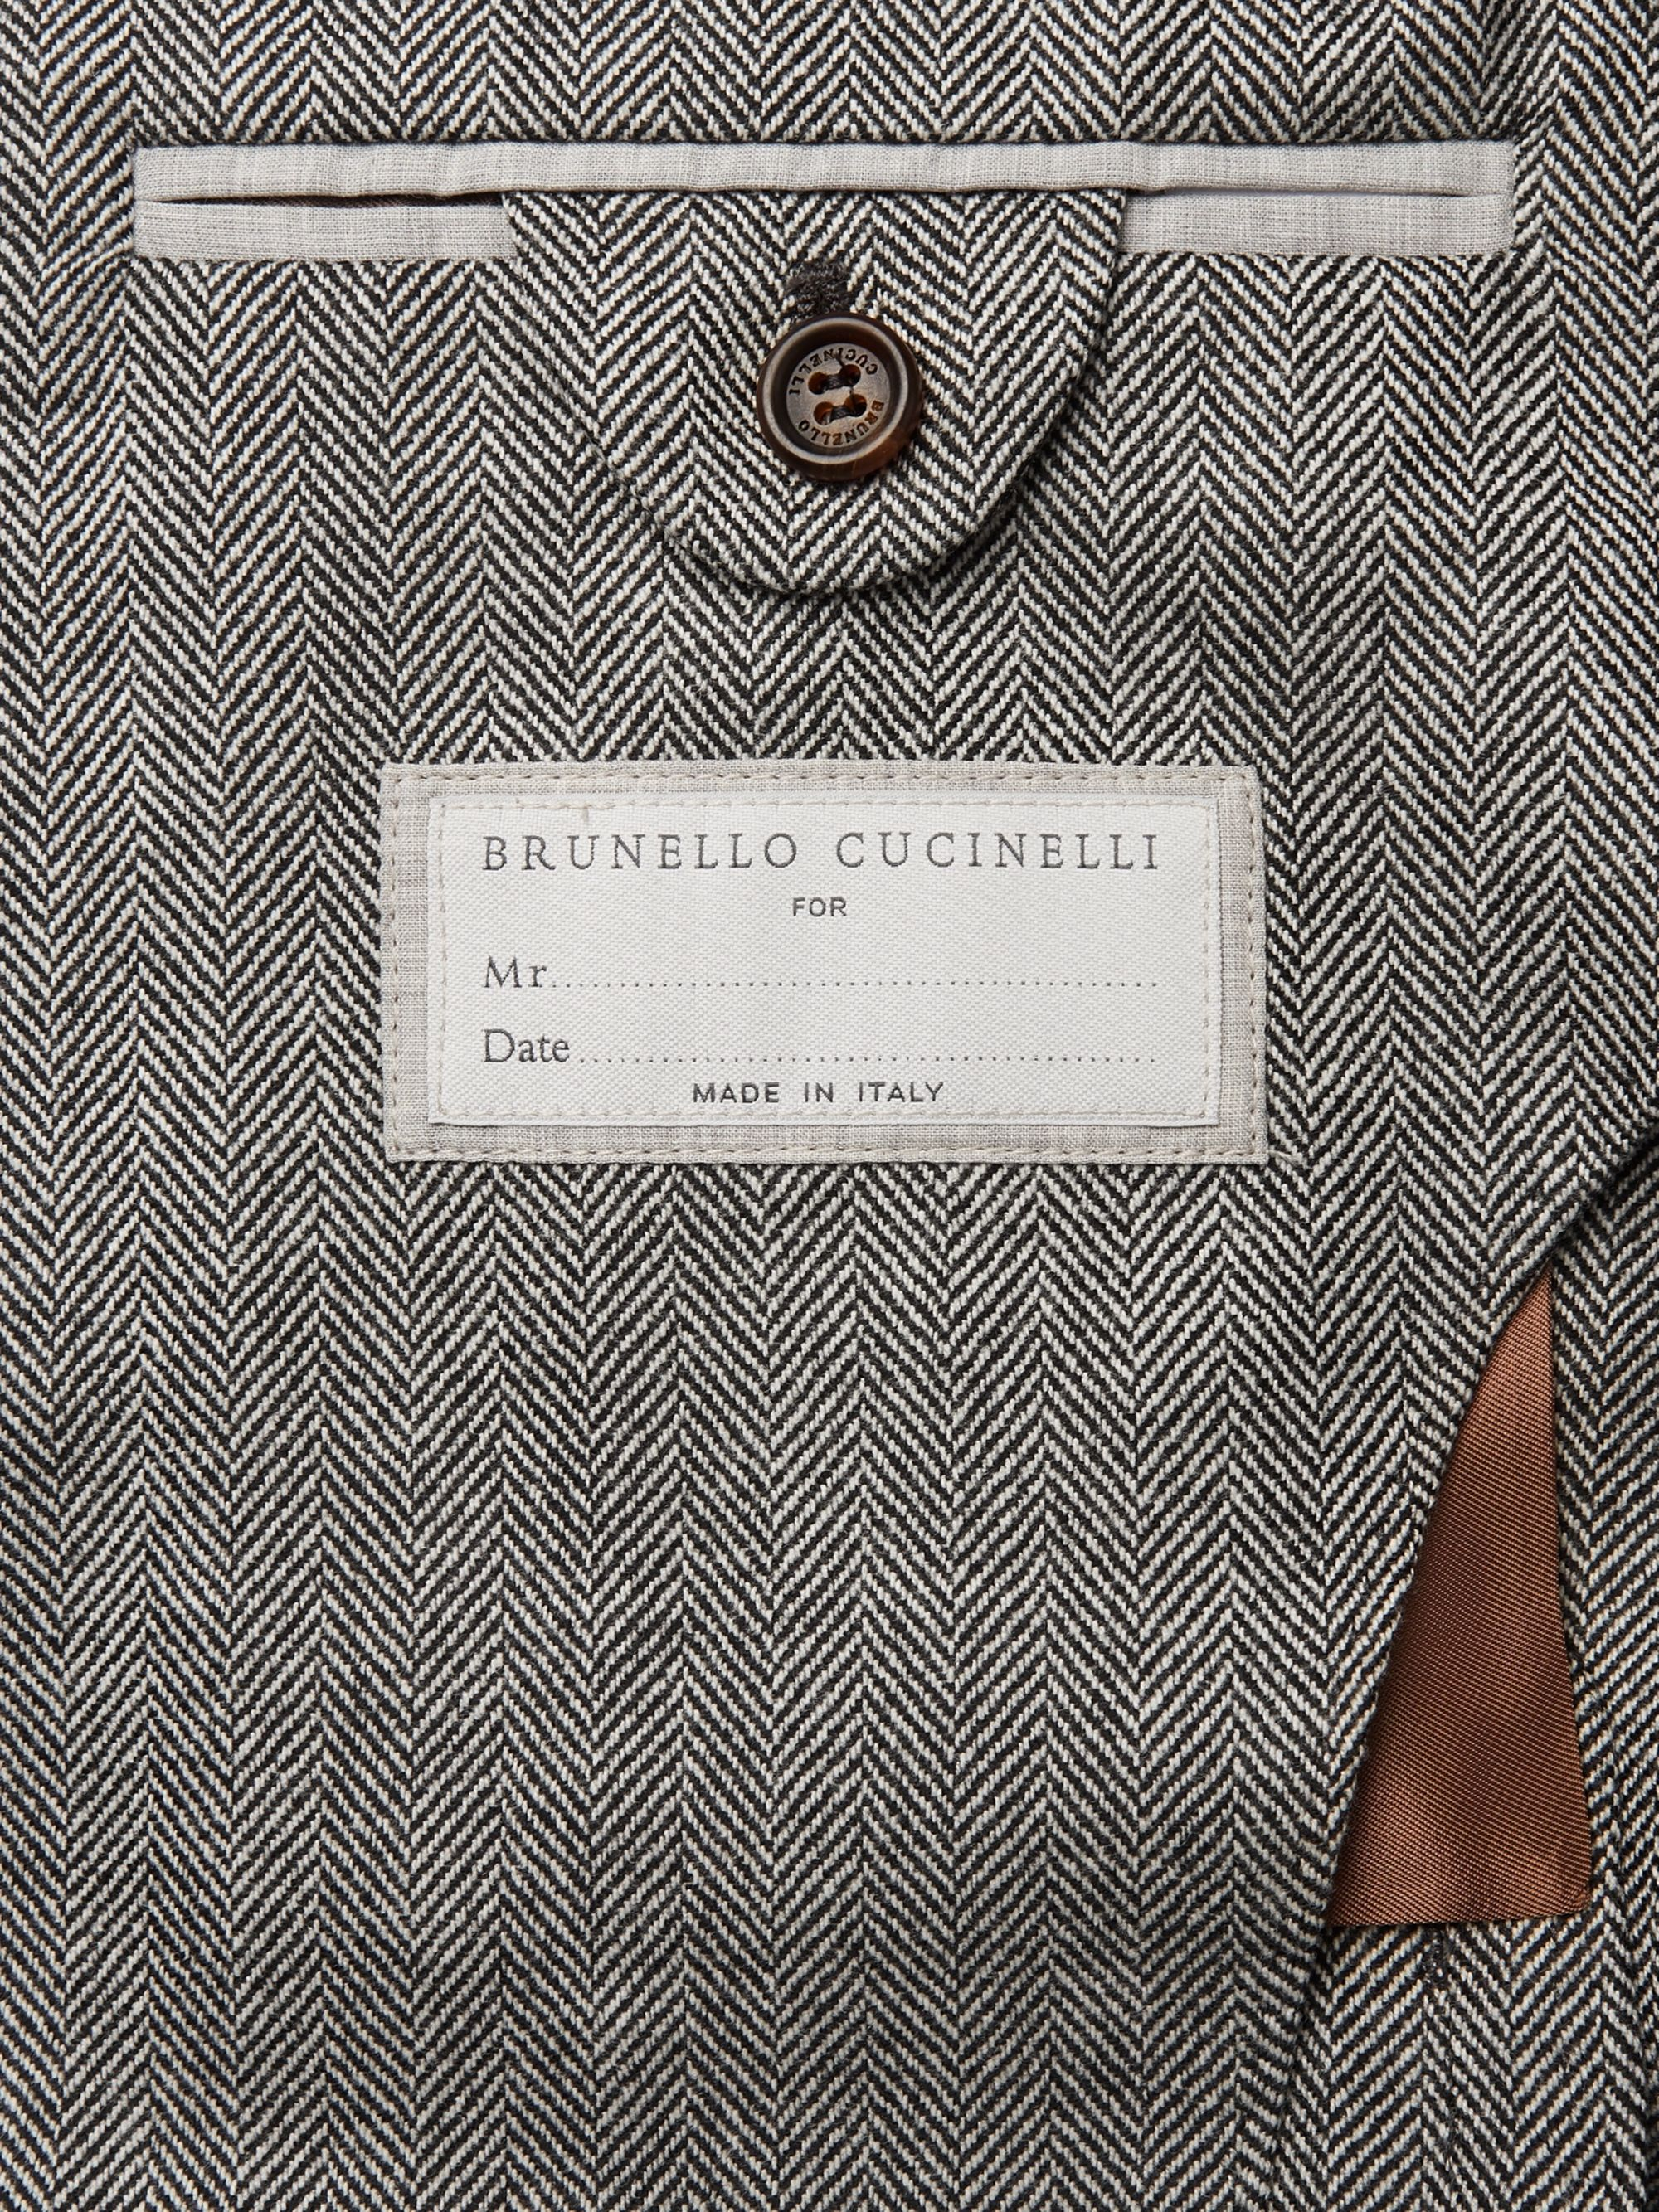 Brunello Cucinelli Grey Herringbone Virgin Wool and Cashmere-Blend Suit Jacket